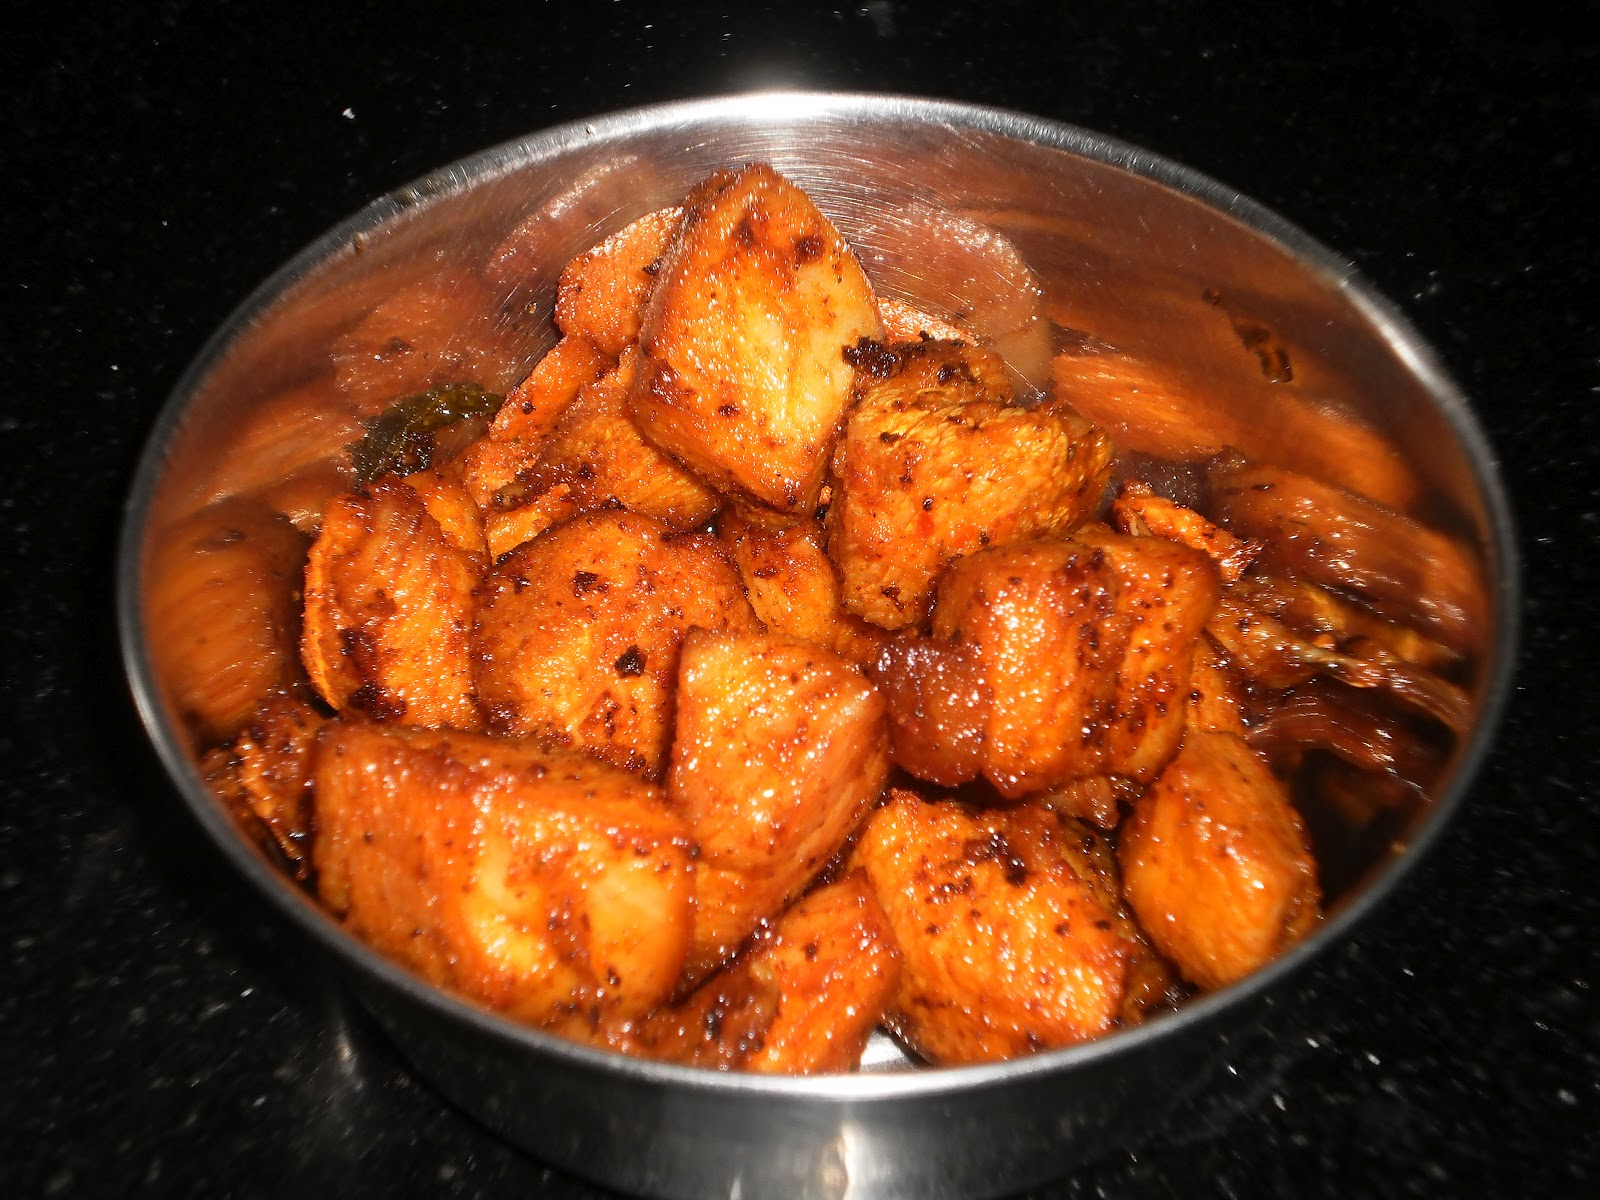 Homemade fried chicken south indian style chicken fry easyfud style is a popular chicken fry starter recipe in authentic south indian restaurants and hotels serving non vegetarian food south indian fried chicken forumfinder Gallery